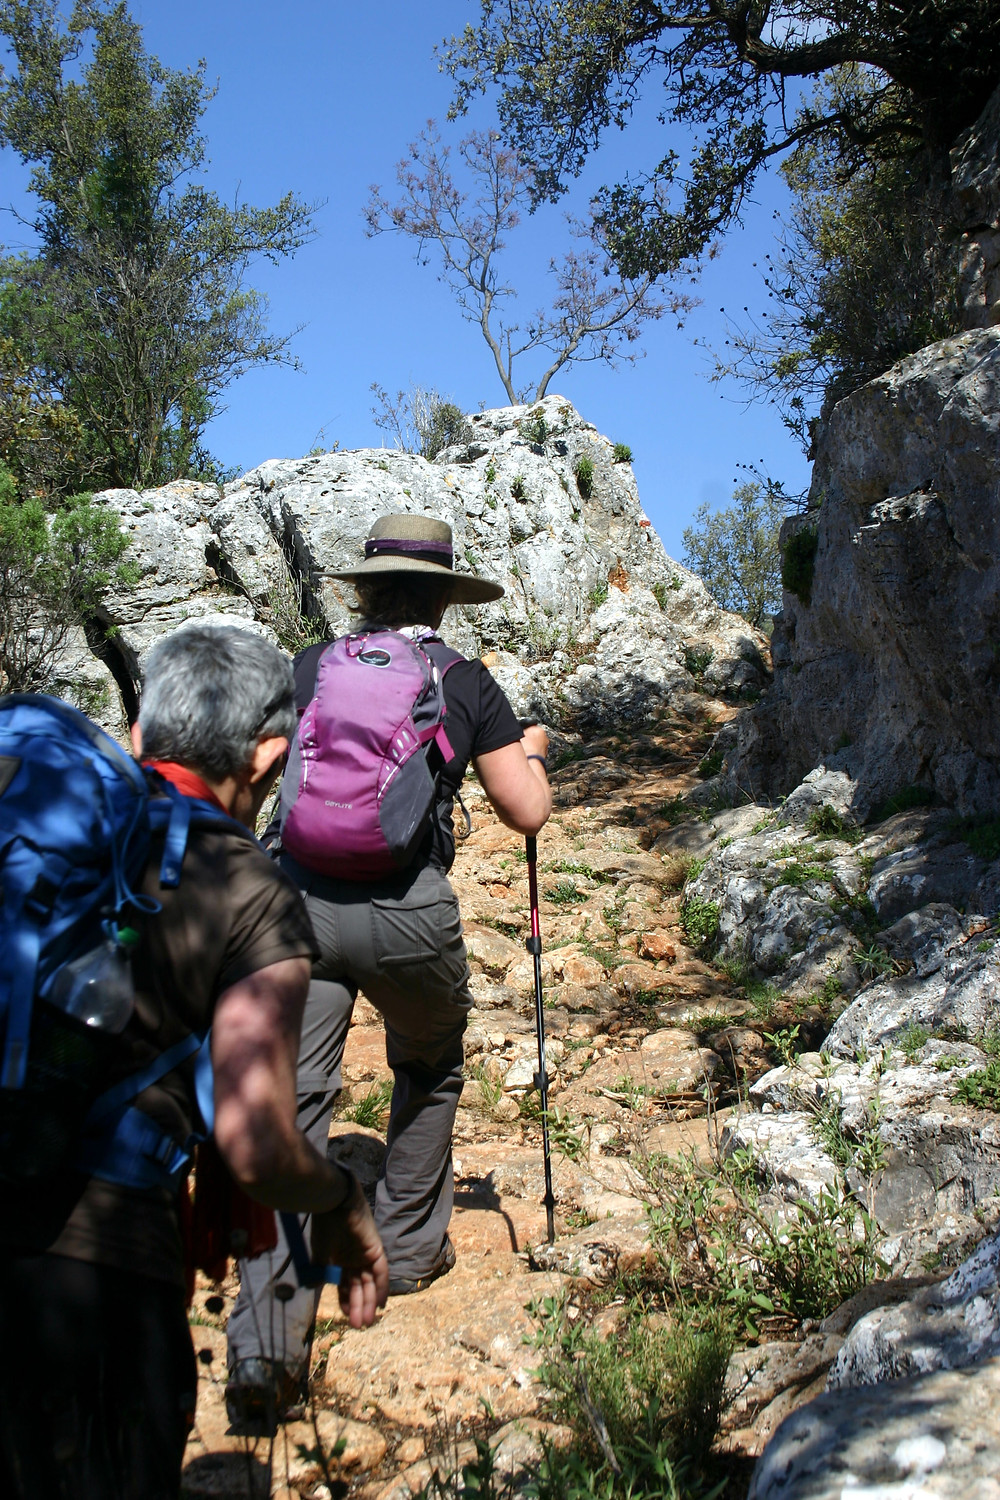 The Lycian way as it approaches the sleeping giant